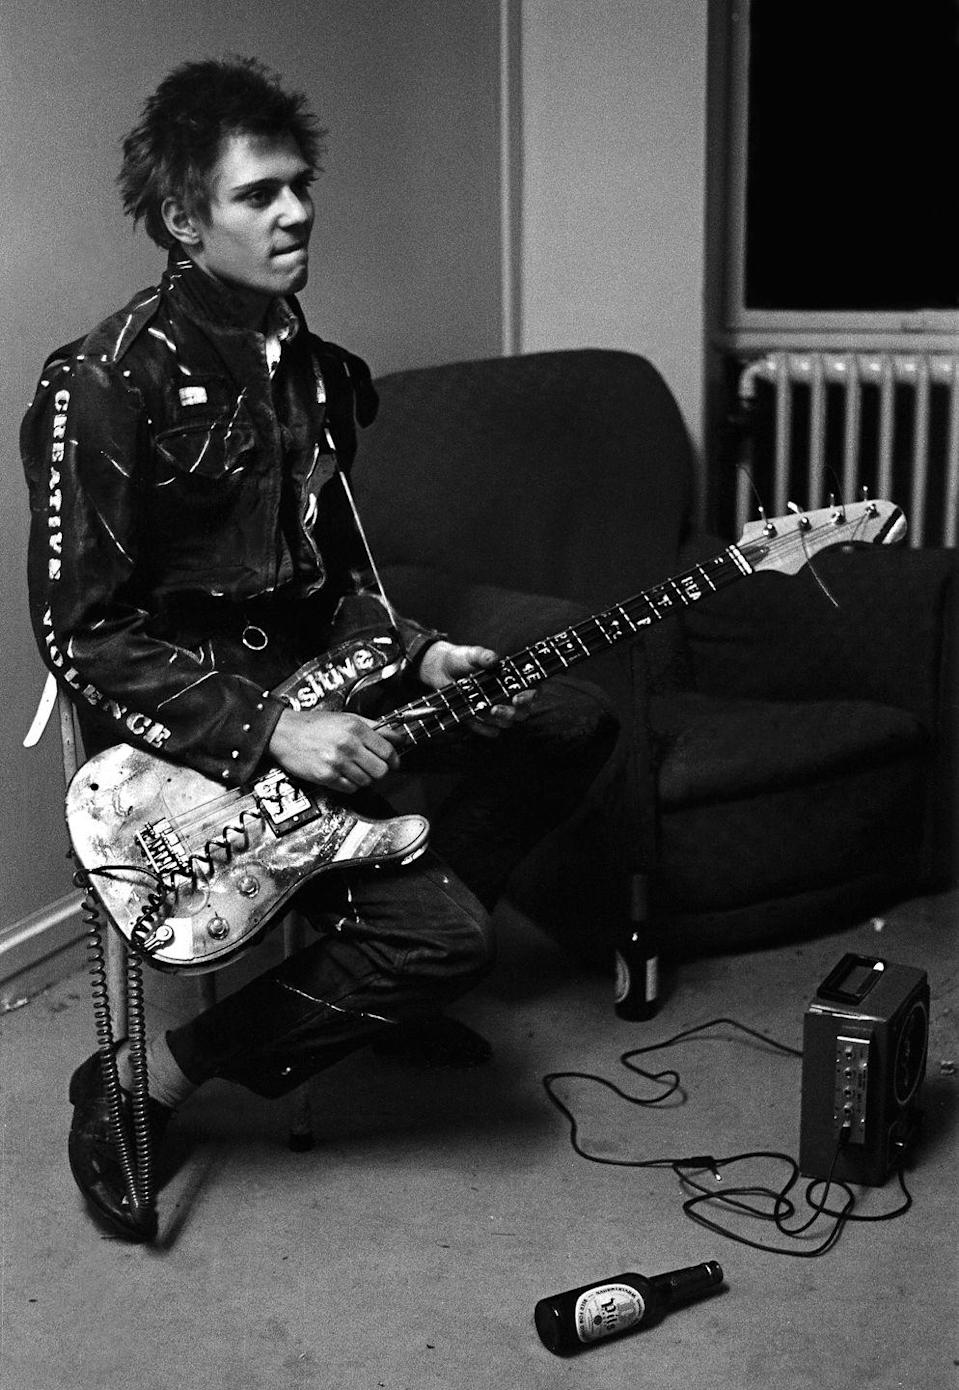 <p>Bassist Paul Simonon of British punk group The Clash, backstage at a concert at the Royal College of Art (RCA), London, November 5, 1976.</p>